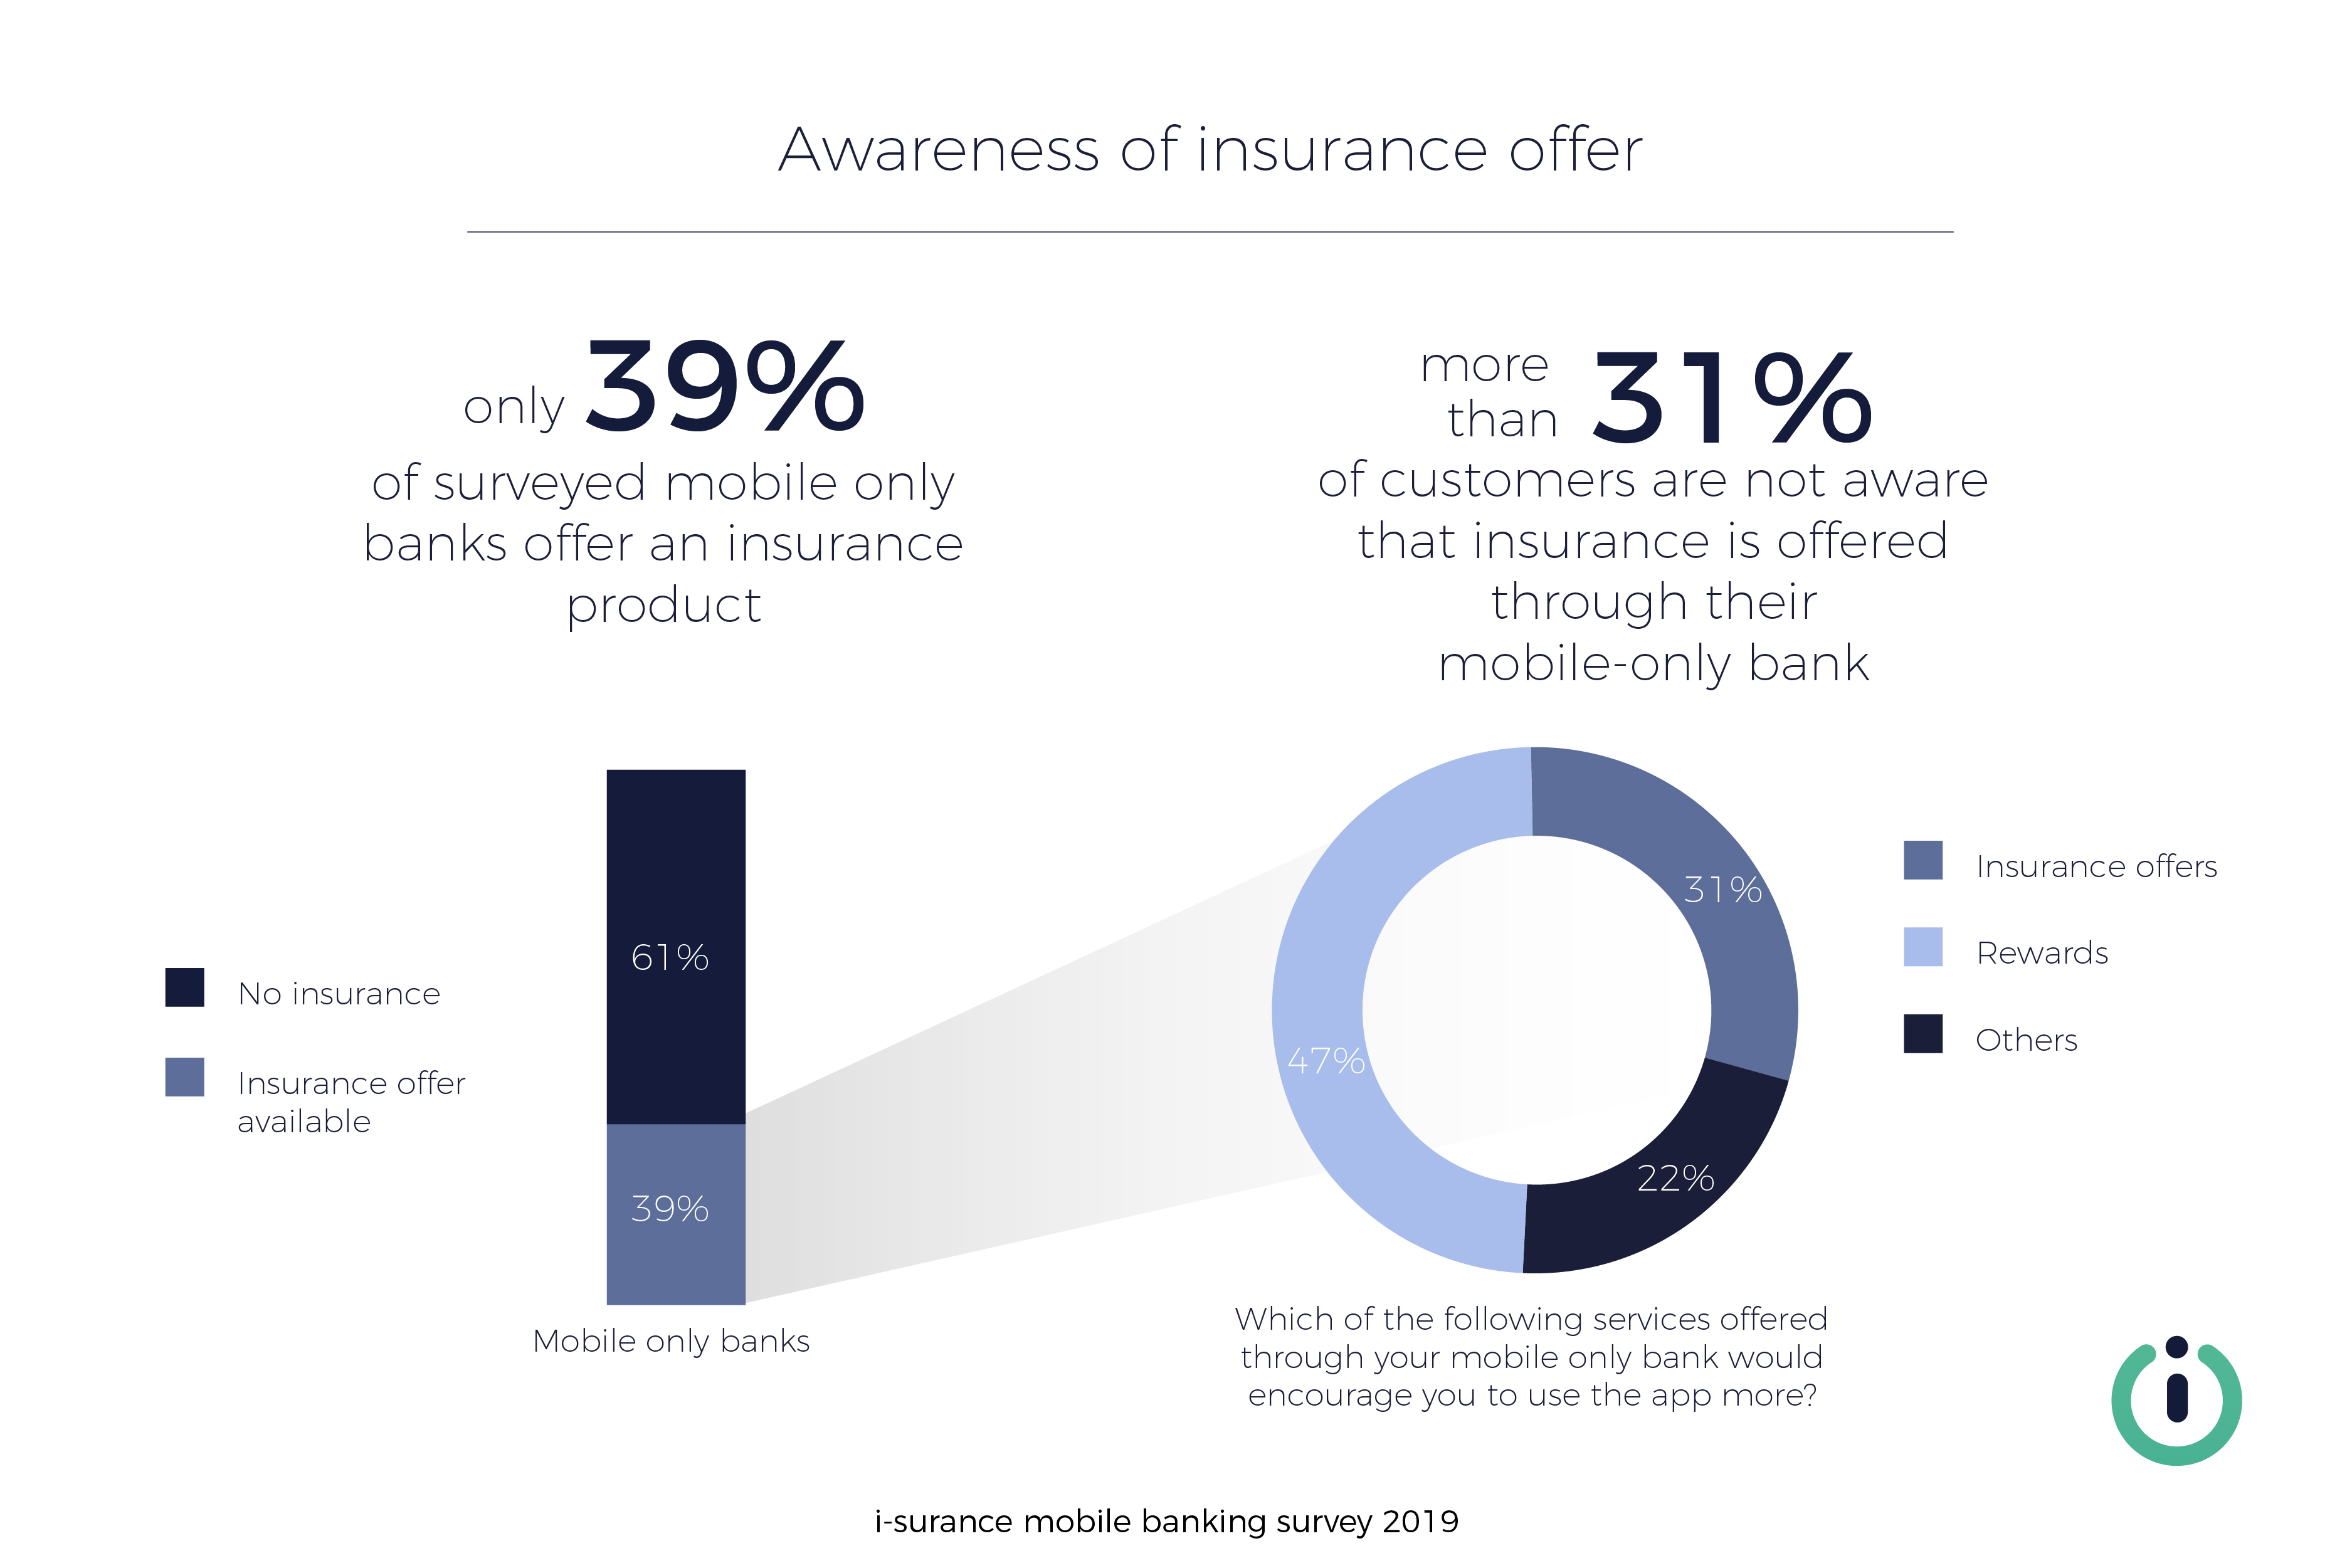 i-surance mobile banking survey 2019 mobile-only banks neobanks